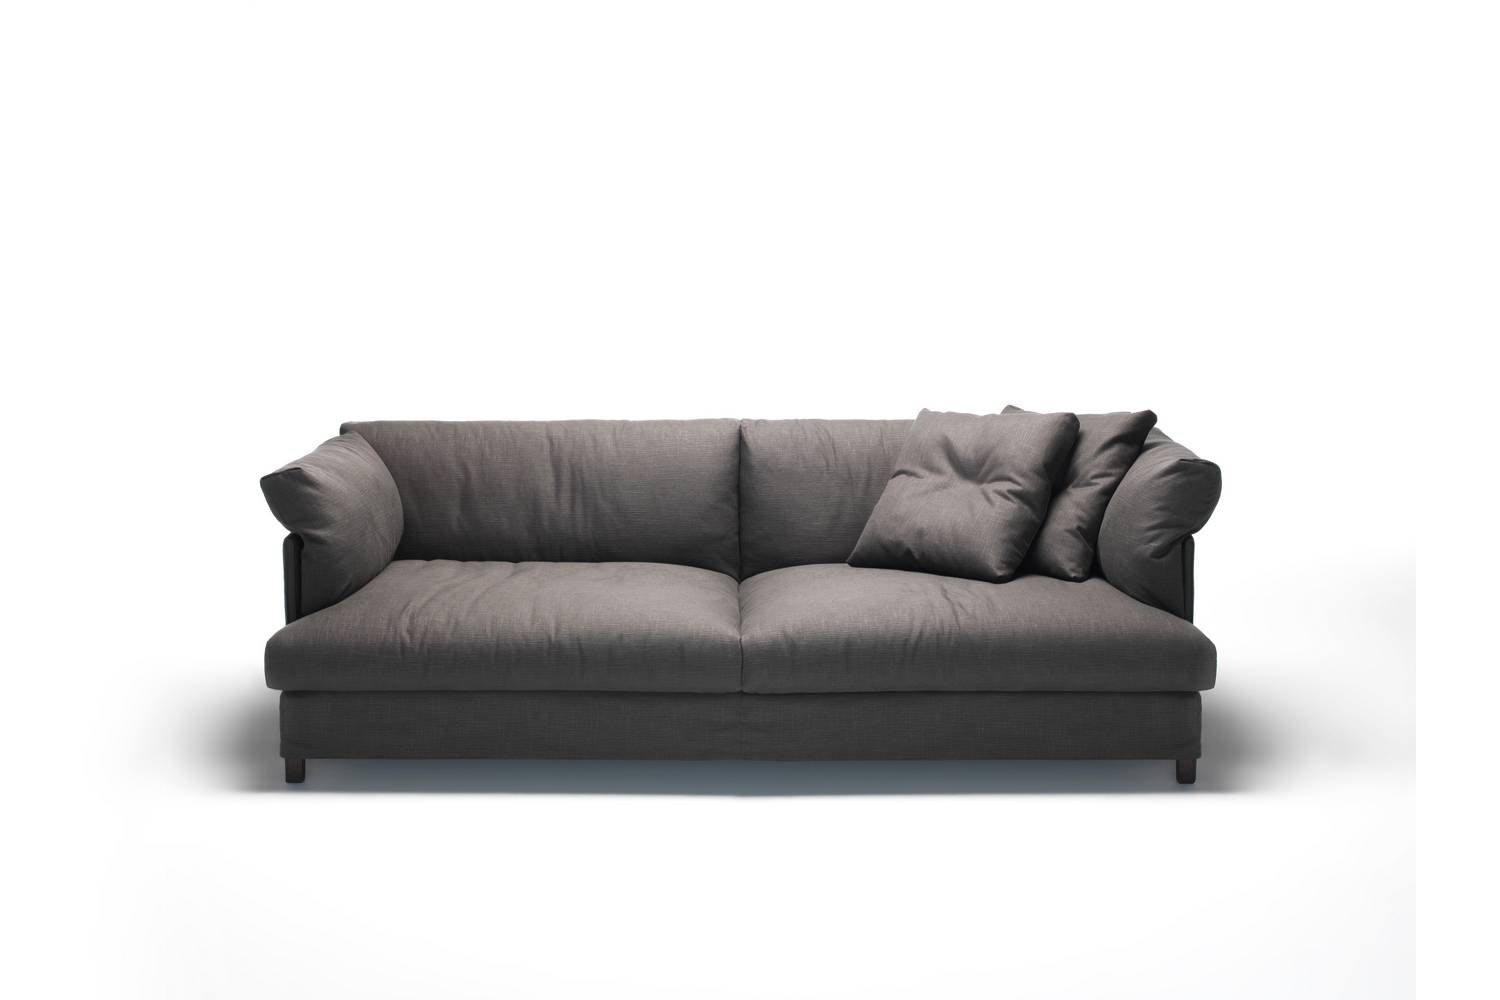 Chemise XL Sofa by Piero Lissoni for Living Divani